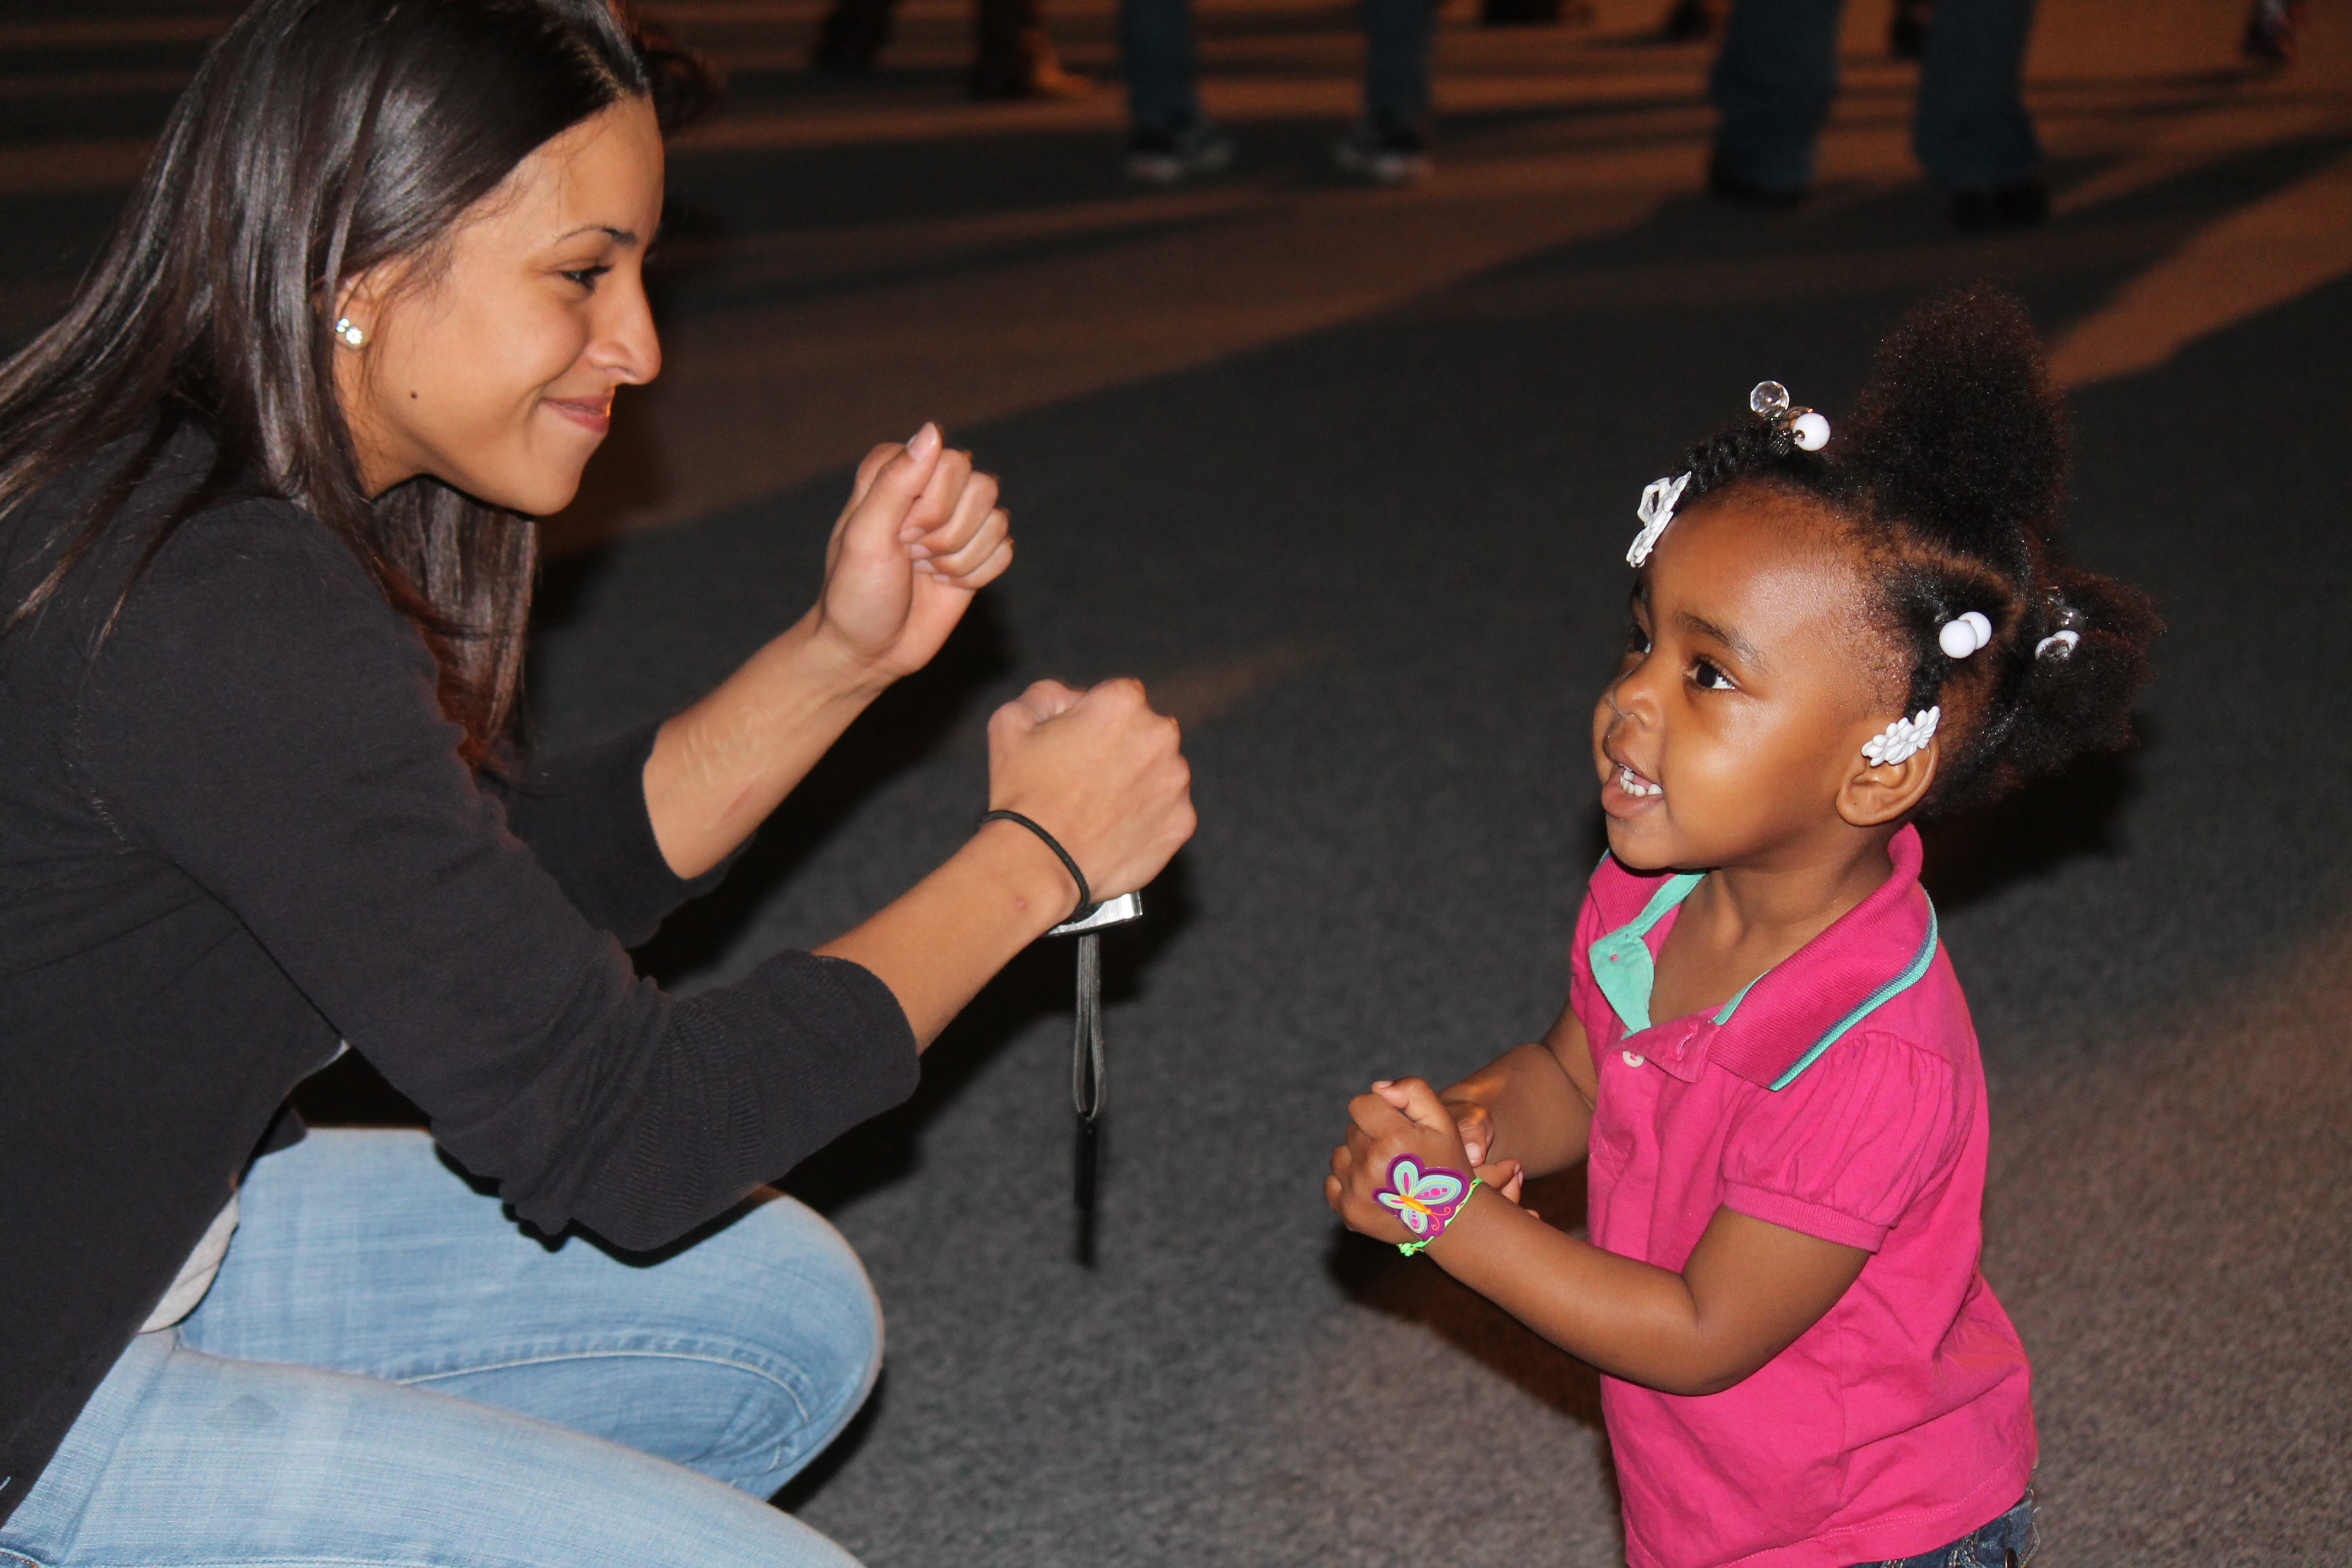 young woman playing with small child